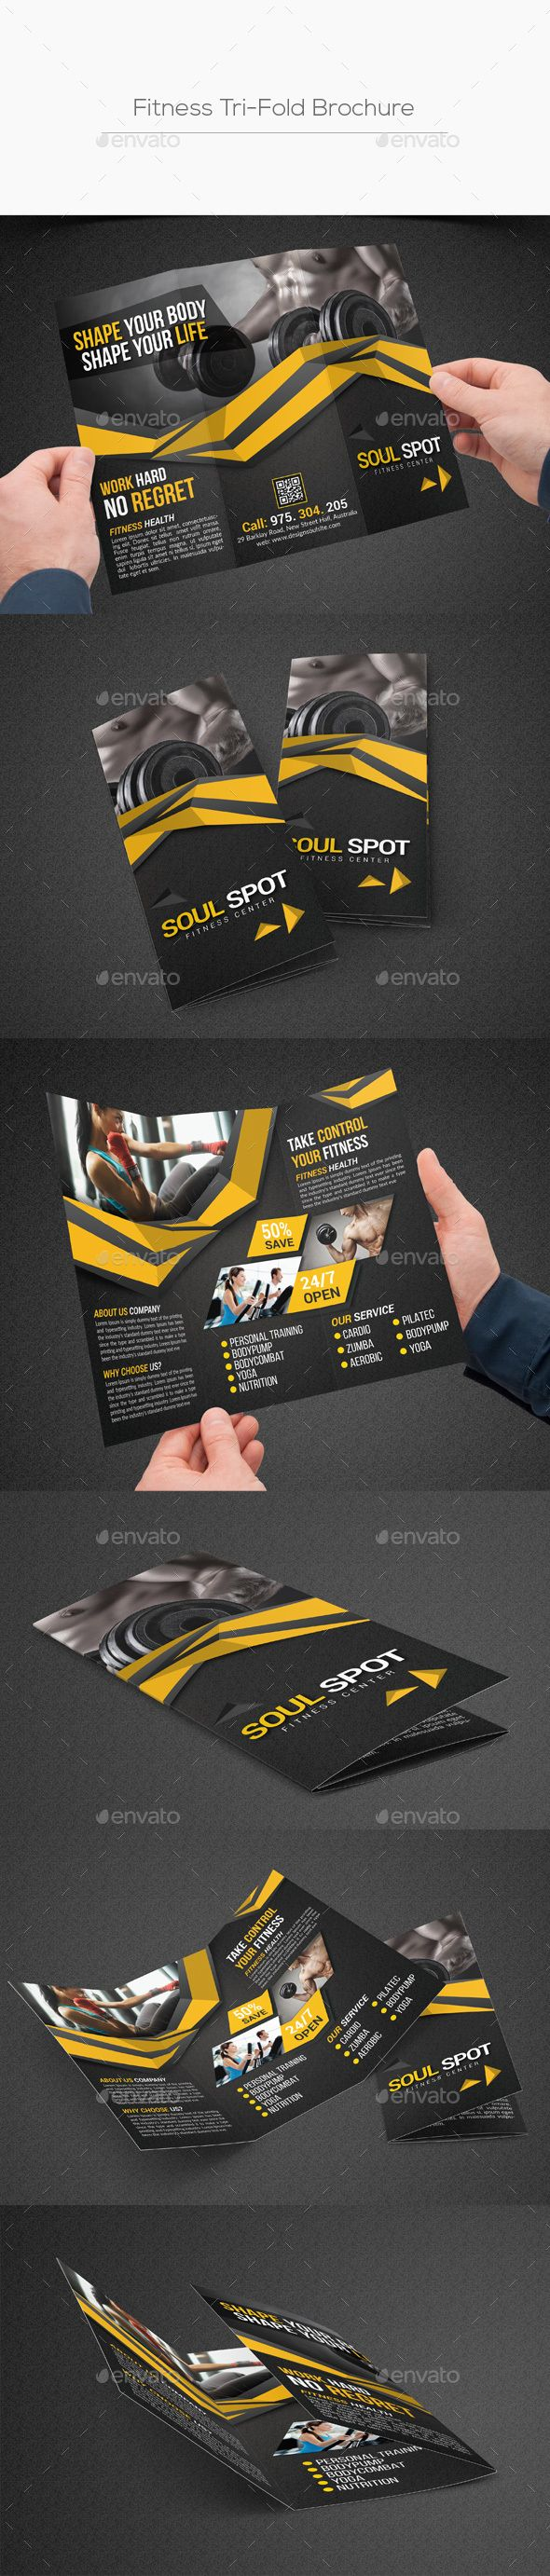 Fitness Tri-Fold Brochure Template PSD. Download here: http ...